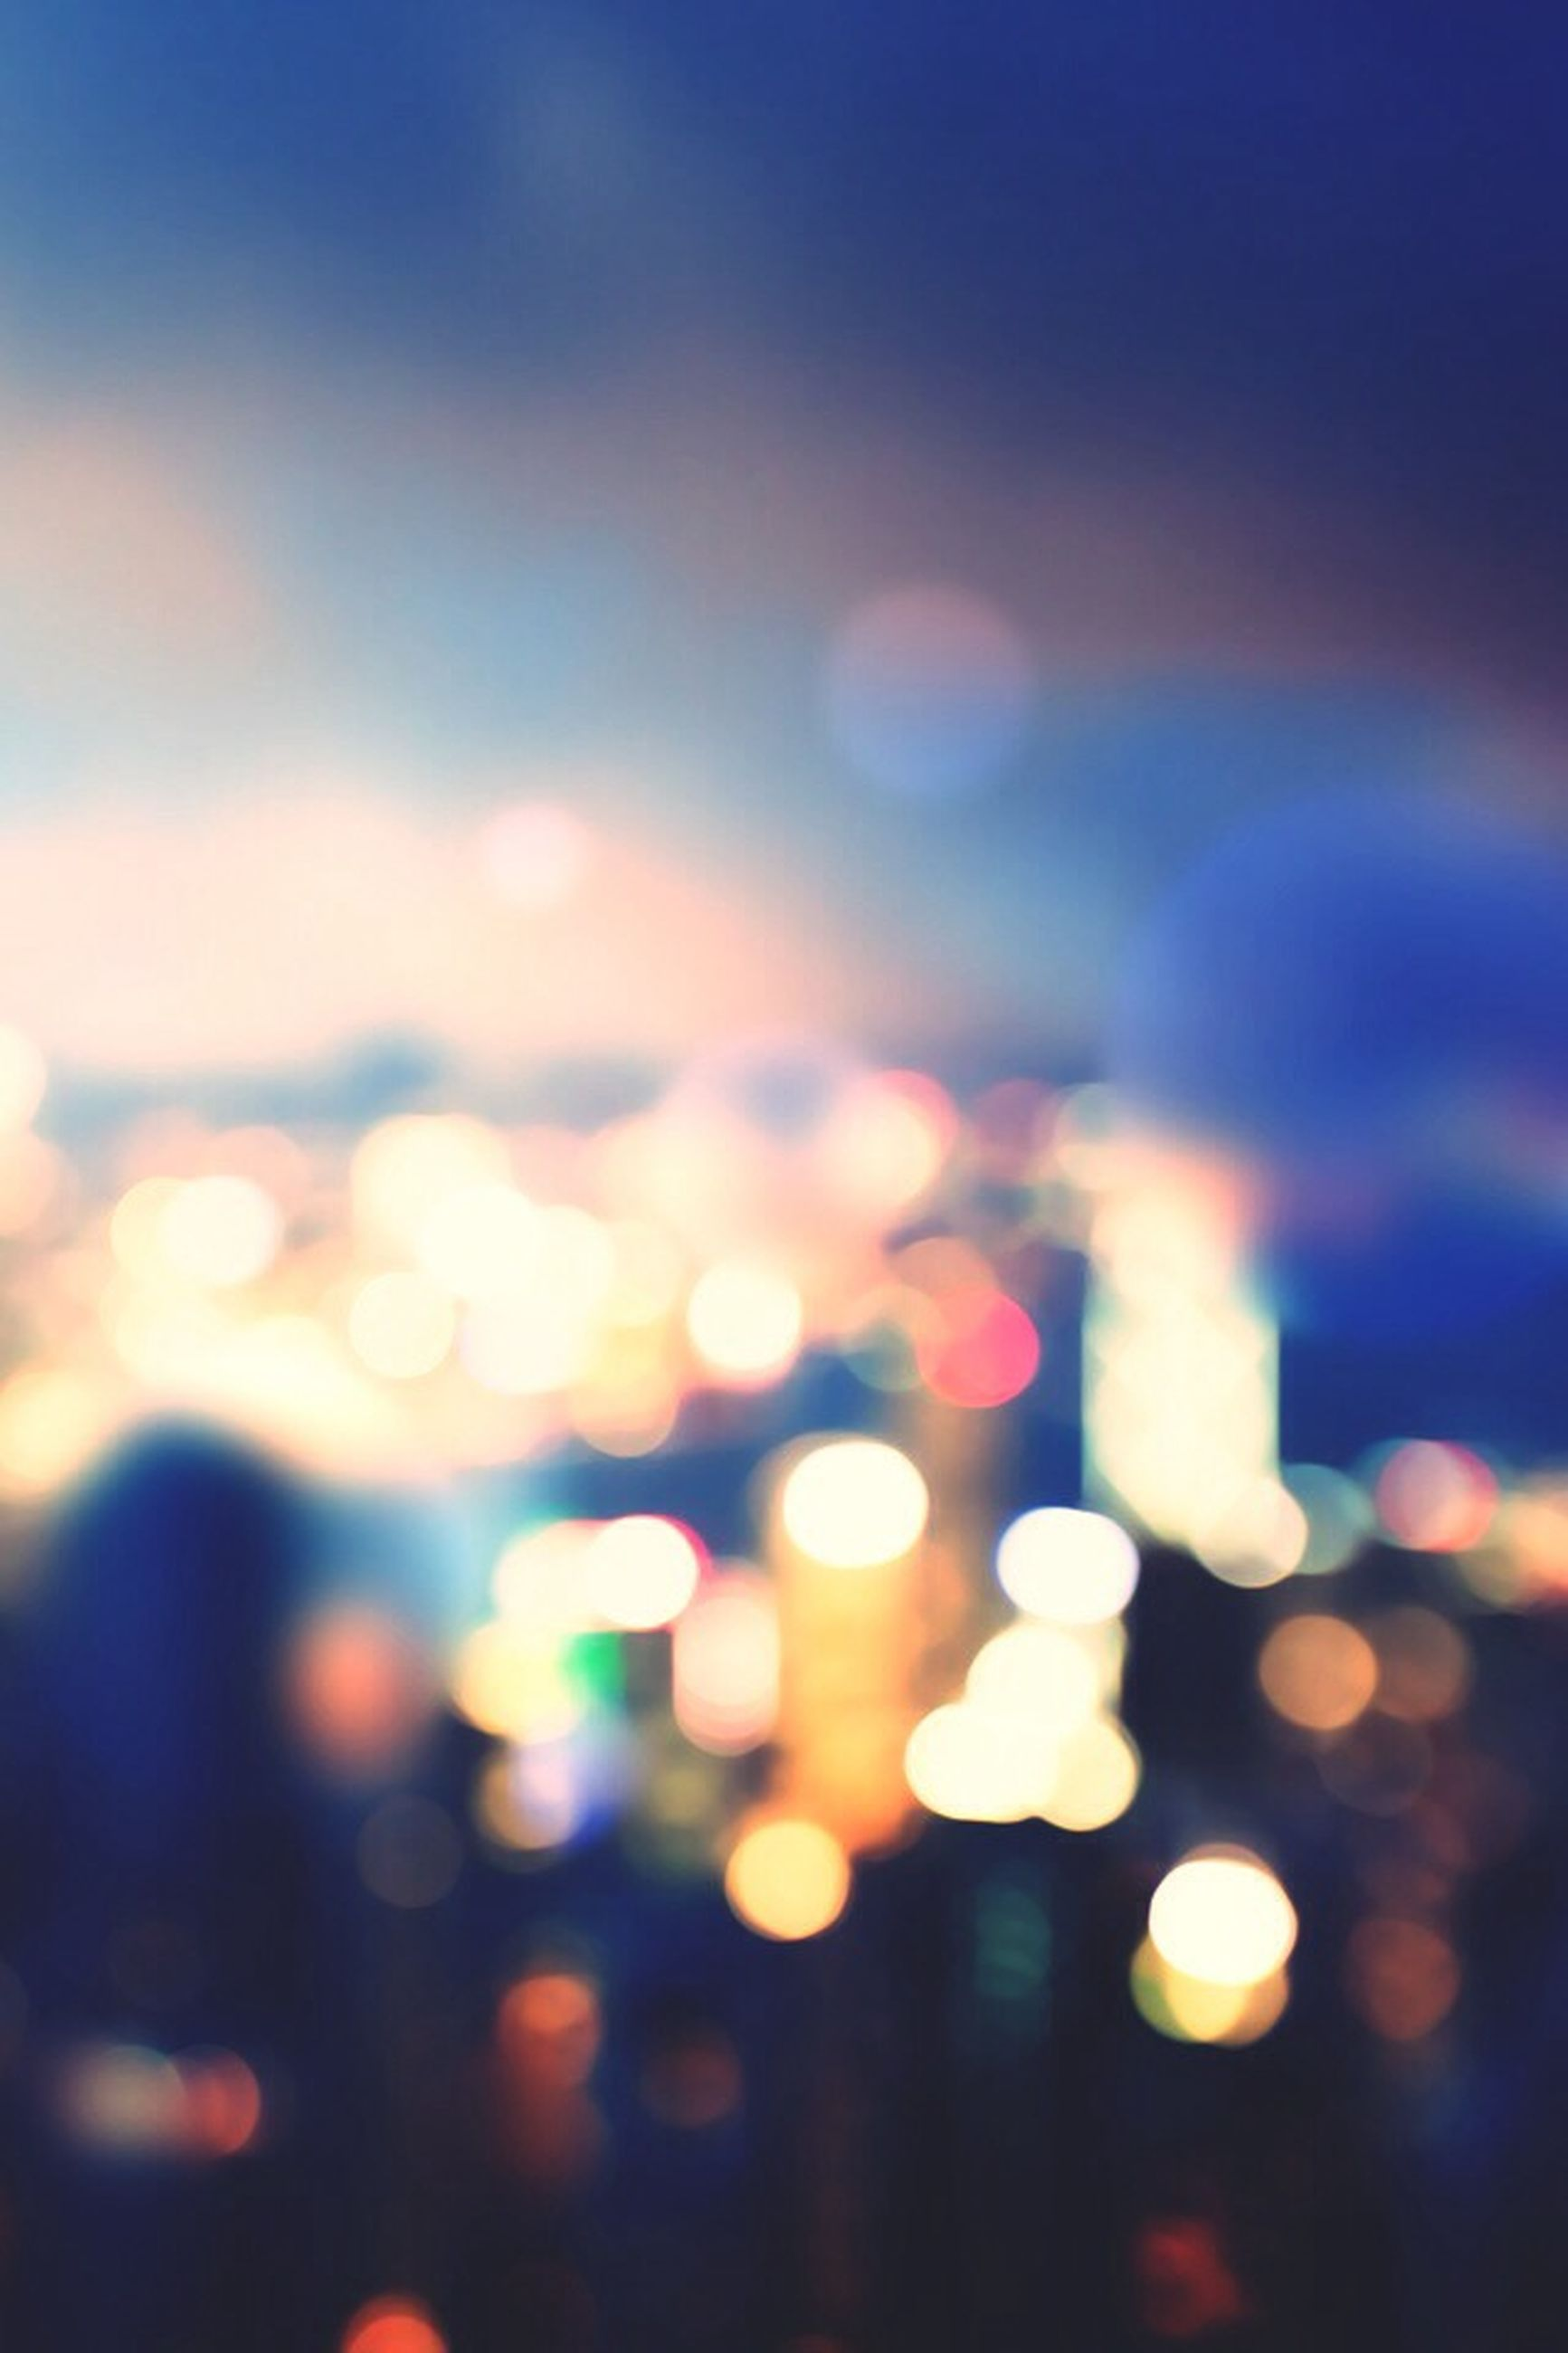 illuminated, defocused, multi colored, night, sky, city, light - natural phenomenon, lens flare, selective focus, focus on foreground, no people, outdoors, dusk, lighting equipment, glowing, blue, light, sunset, close-up, abstract